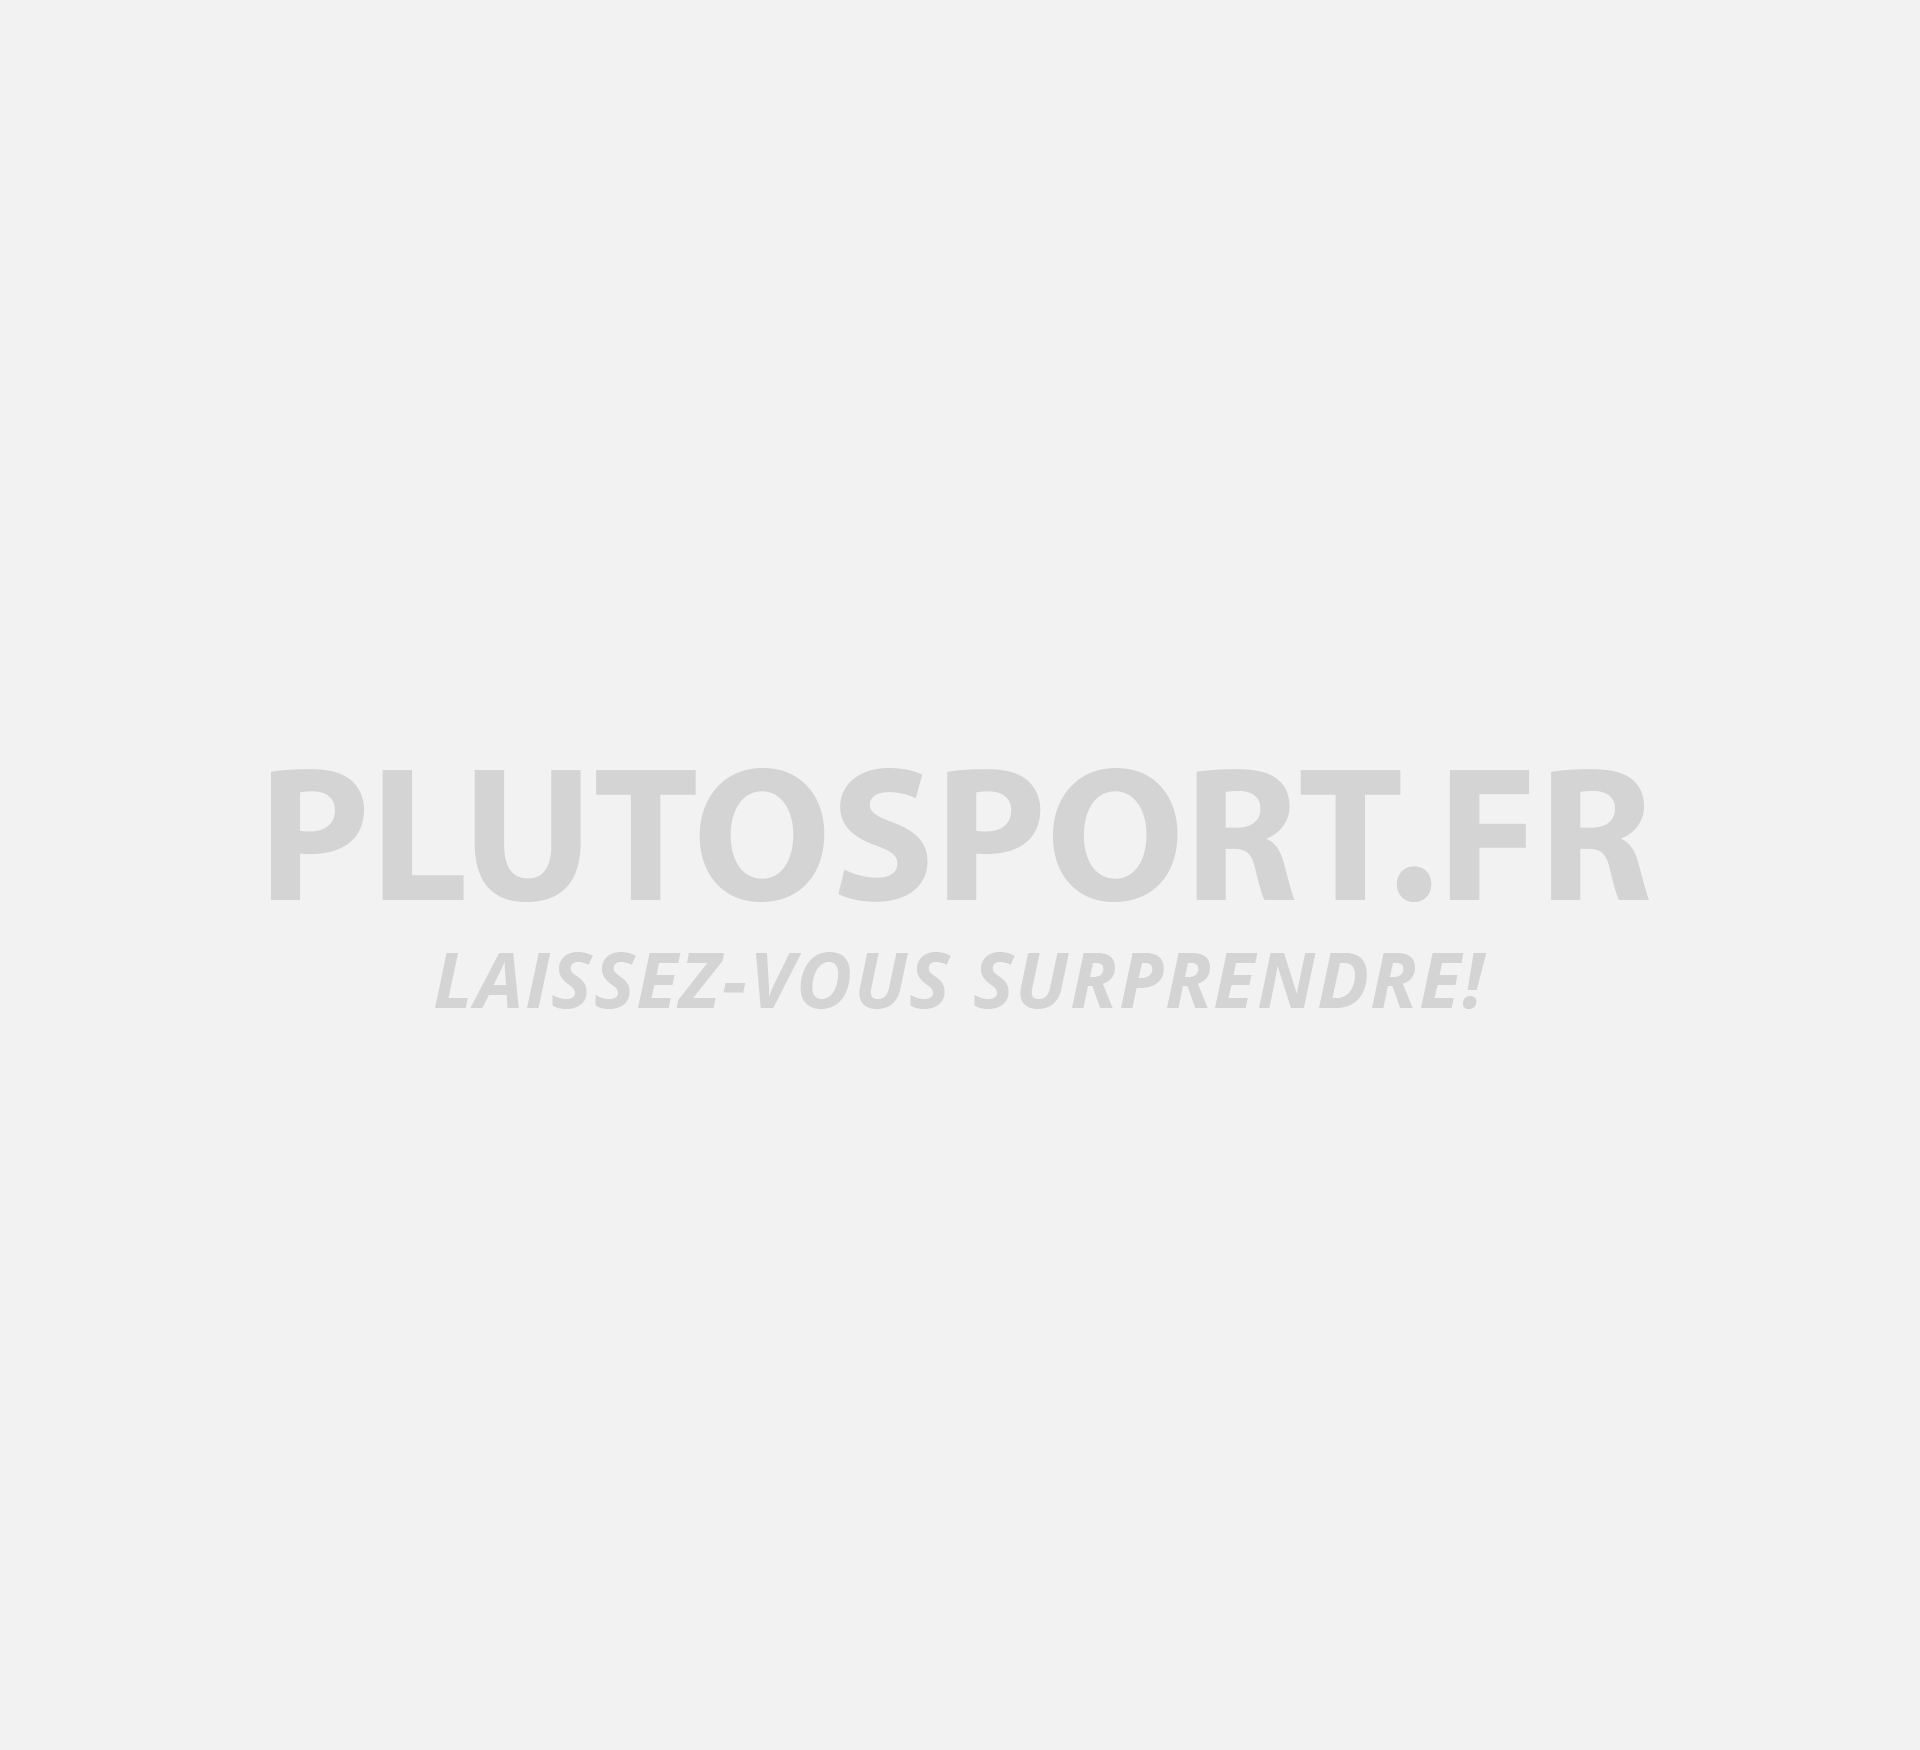 La veste Jack & Jones Originals Ocean Ground Jacket pour hommes